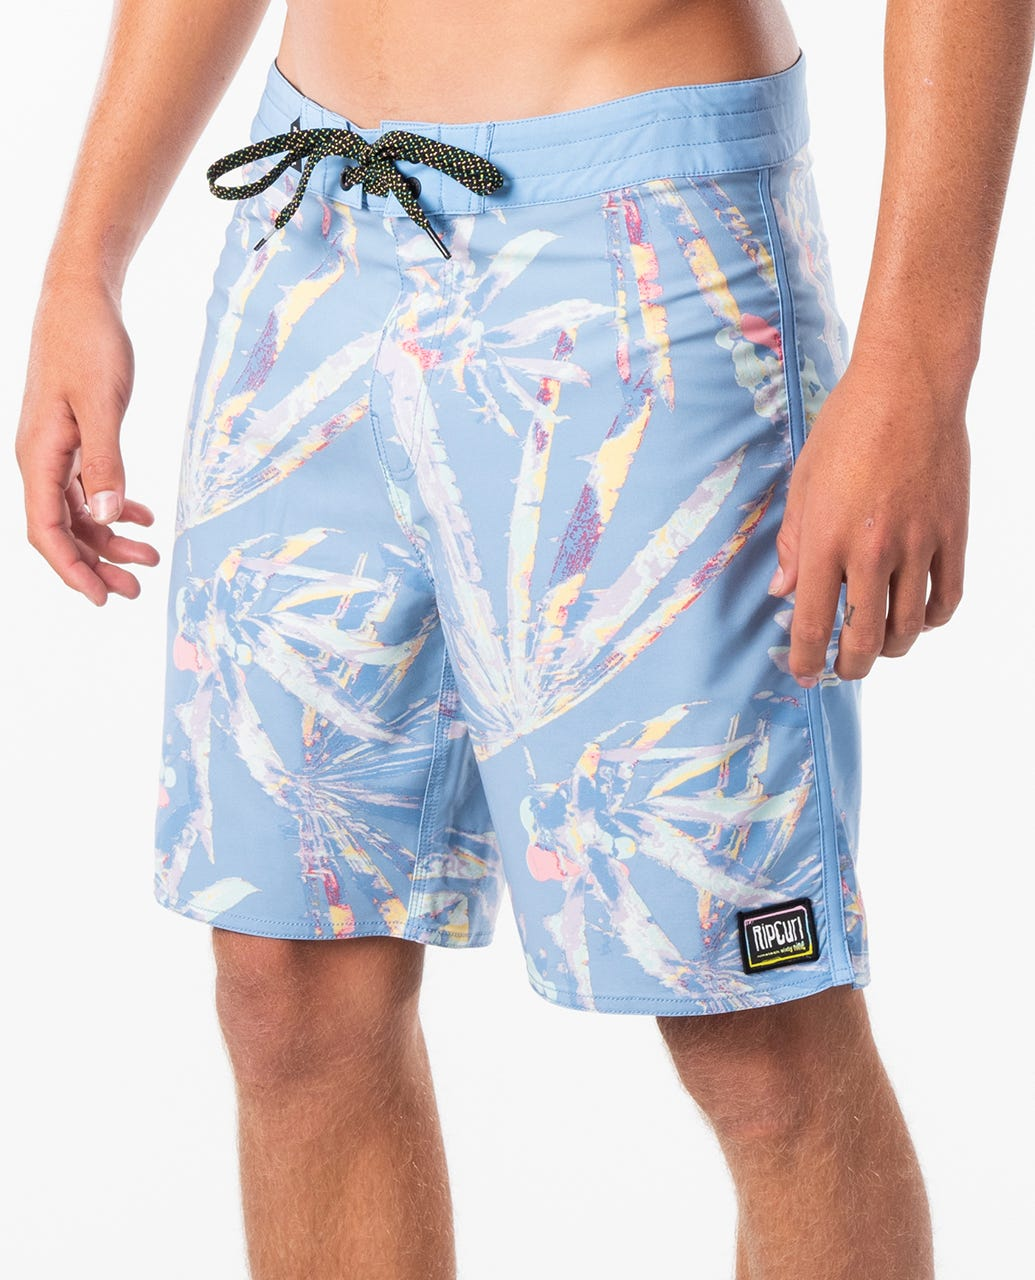 WWT Unicorn Mens Adjustable Beach Shorts with Mesh Lining//Side Pockets